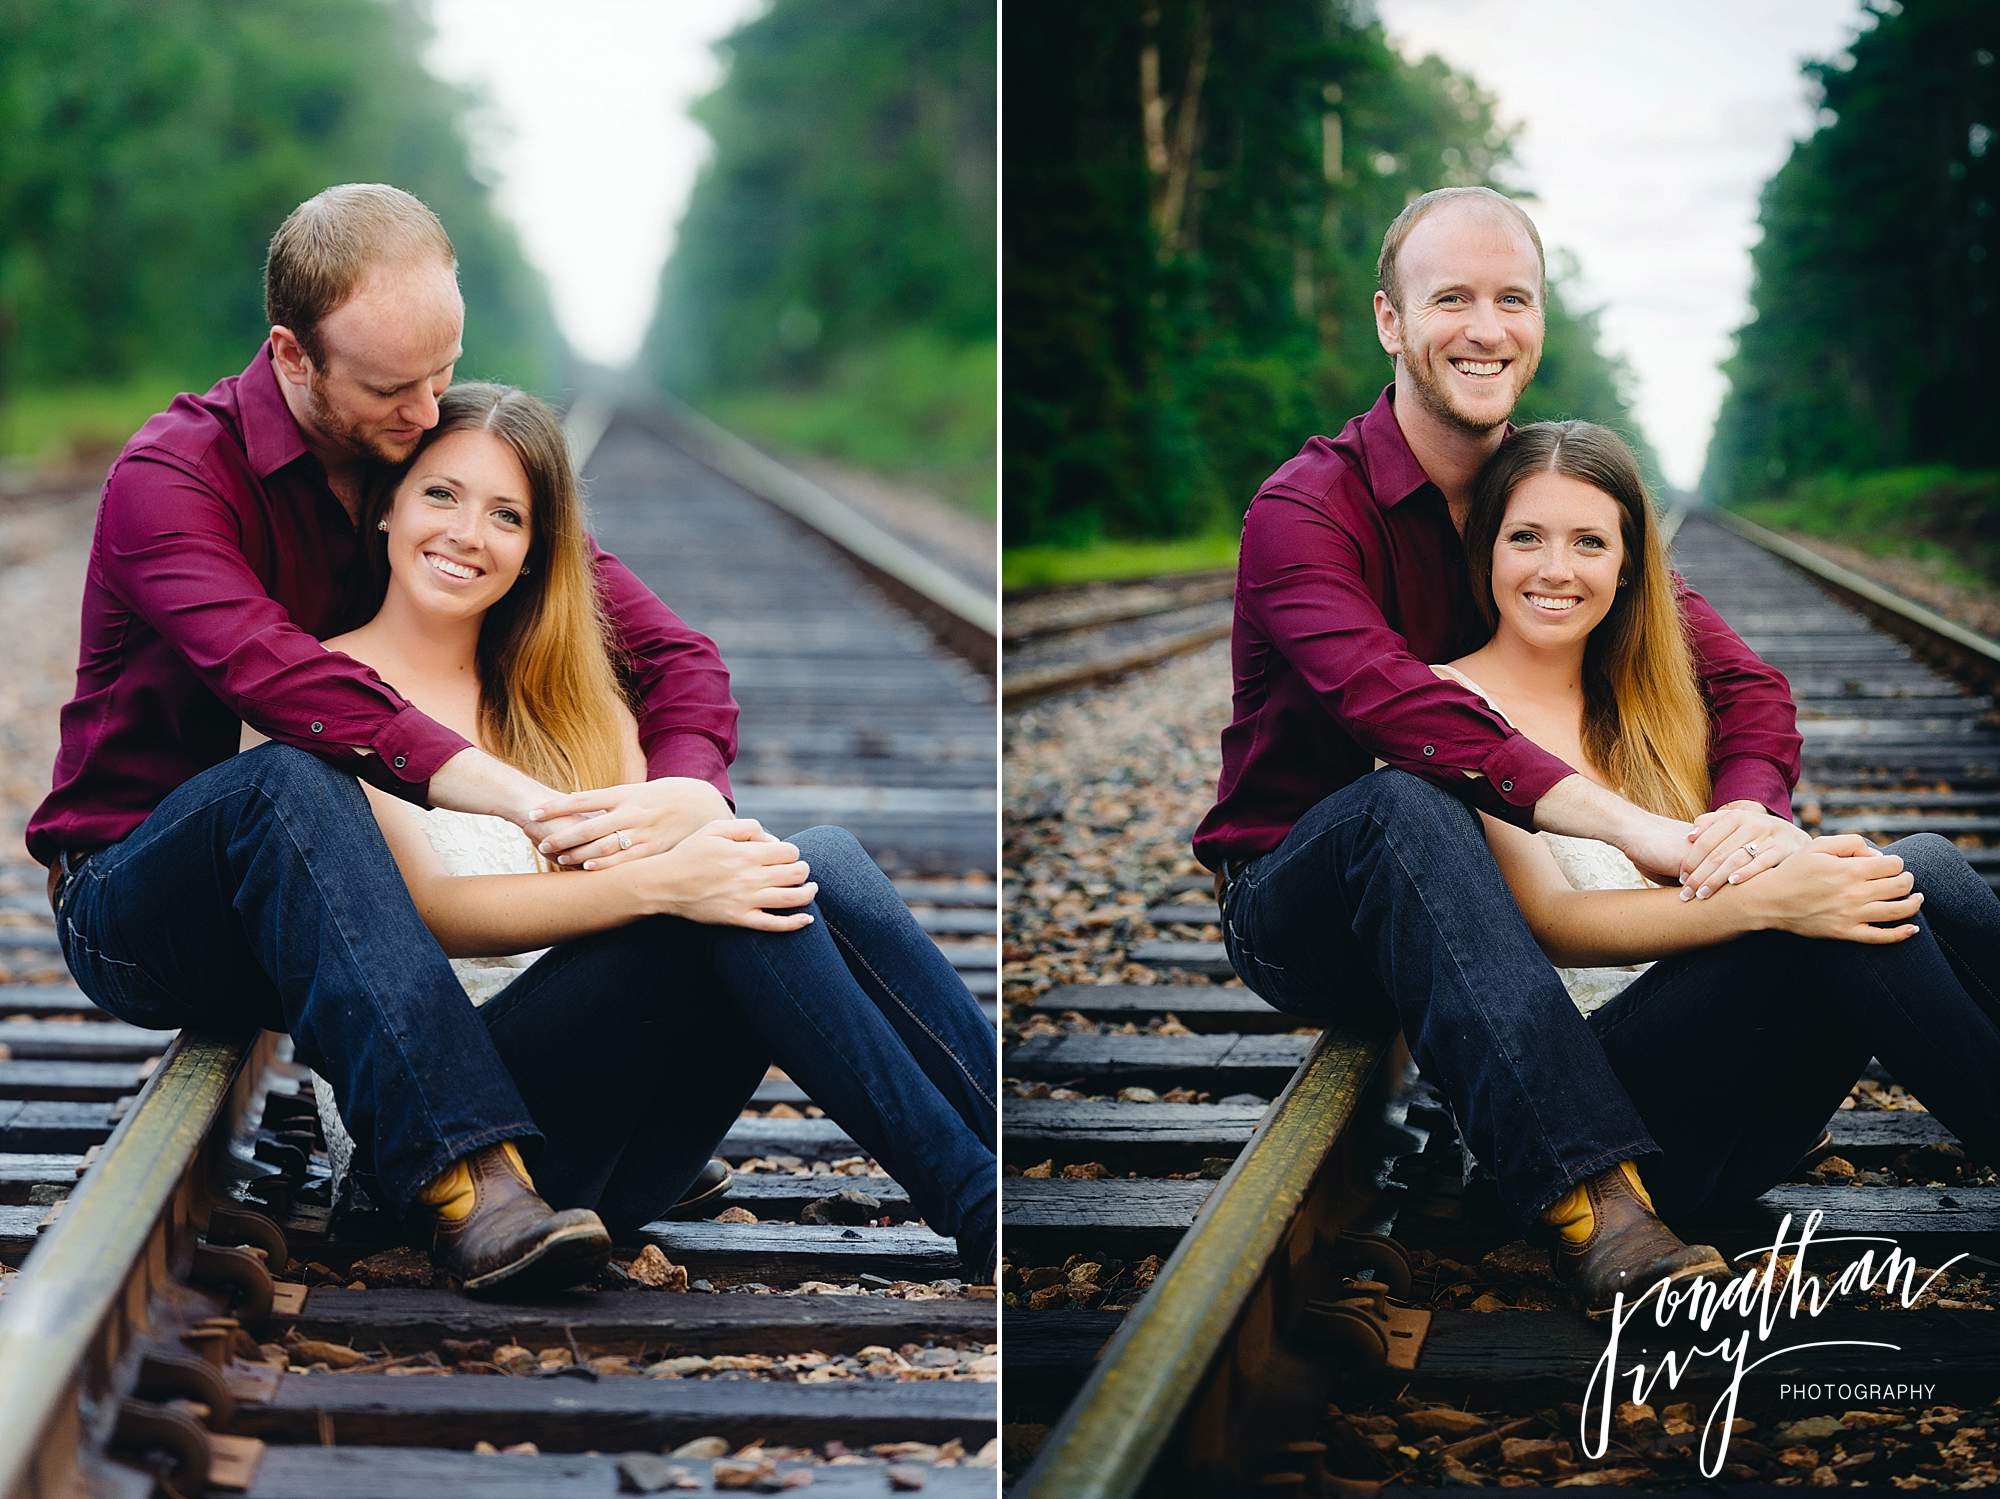 Country-rustic-engagement-photographer_0007.jpg